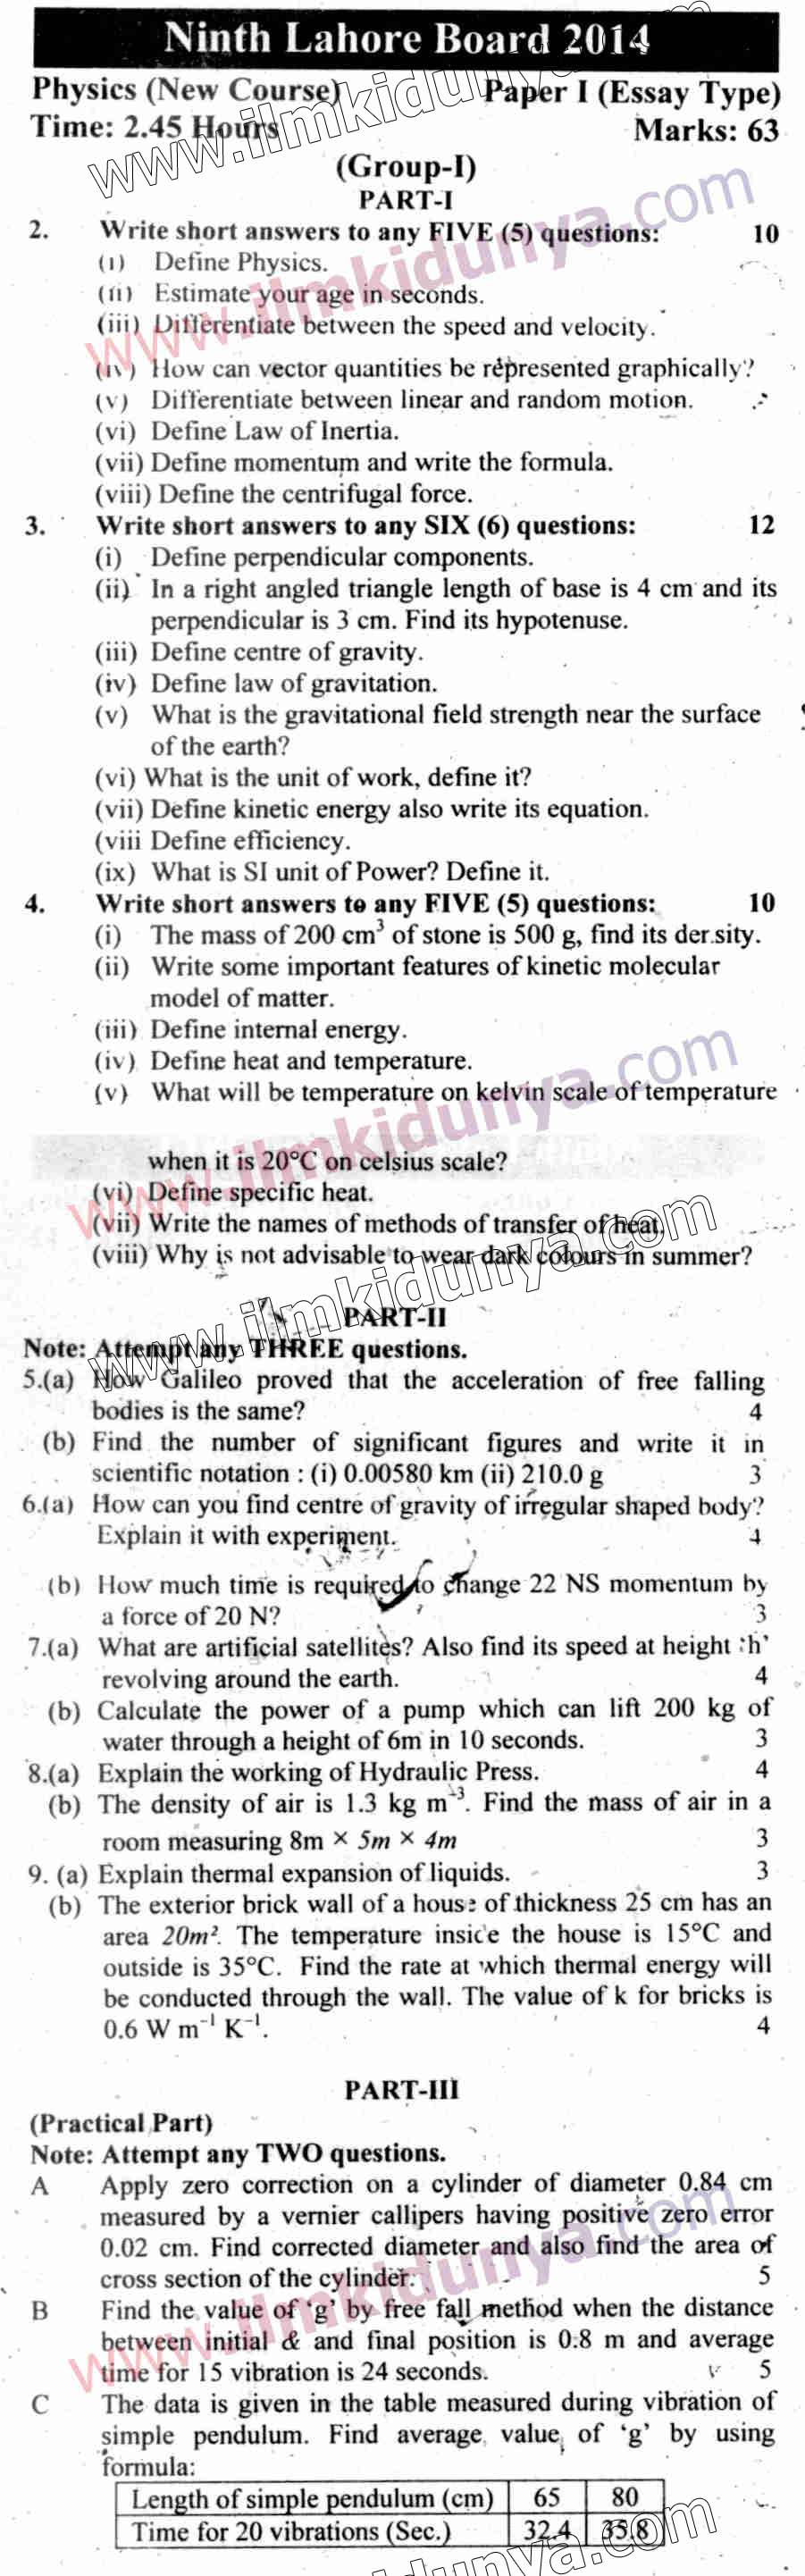 Past Papers 2014 Lahore Board 9th Class Physics Subjective Group 1